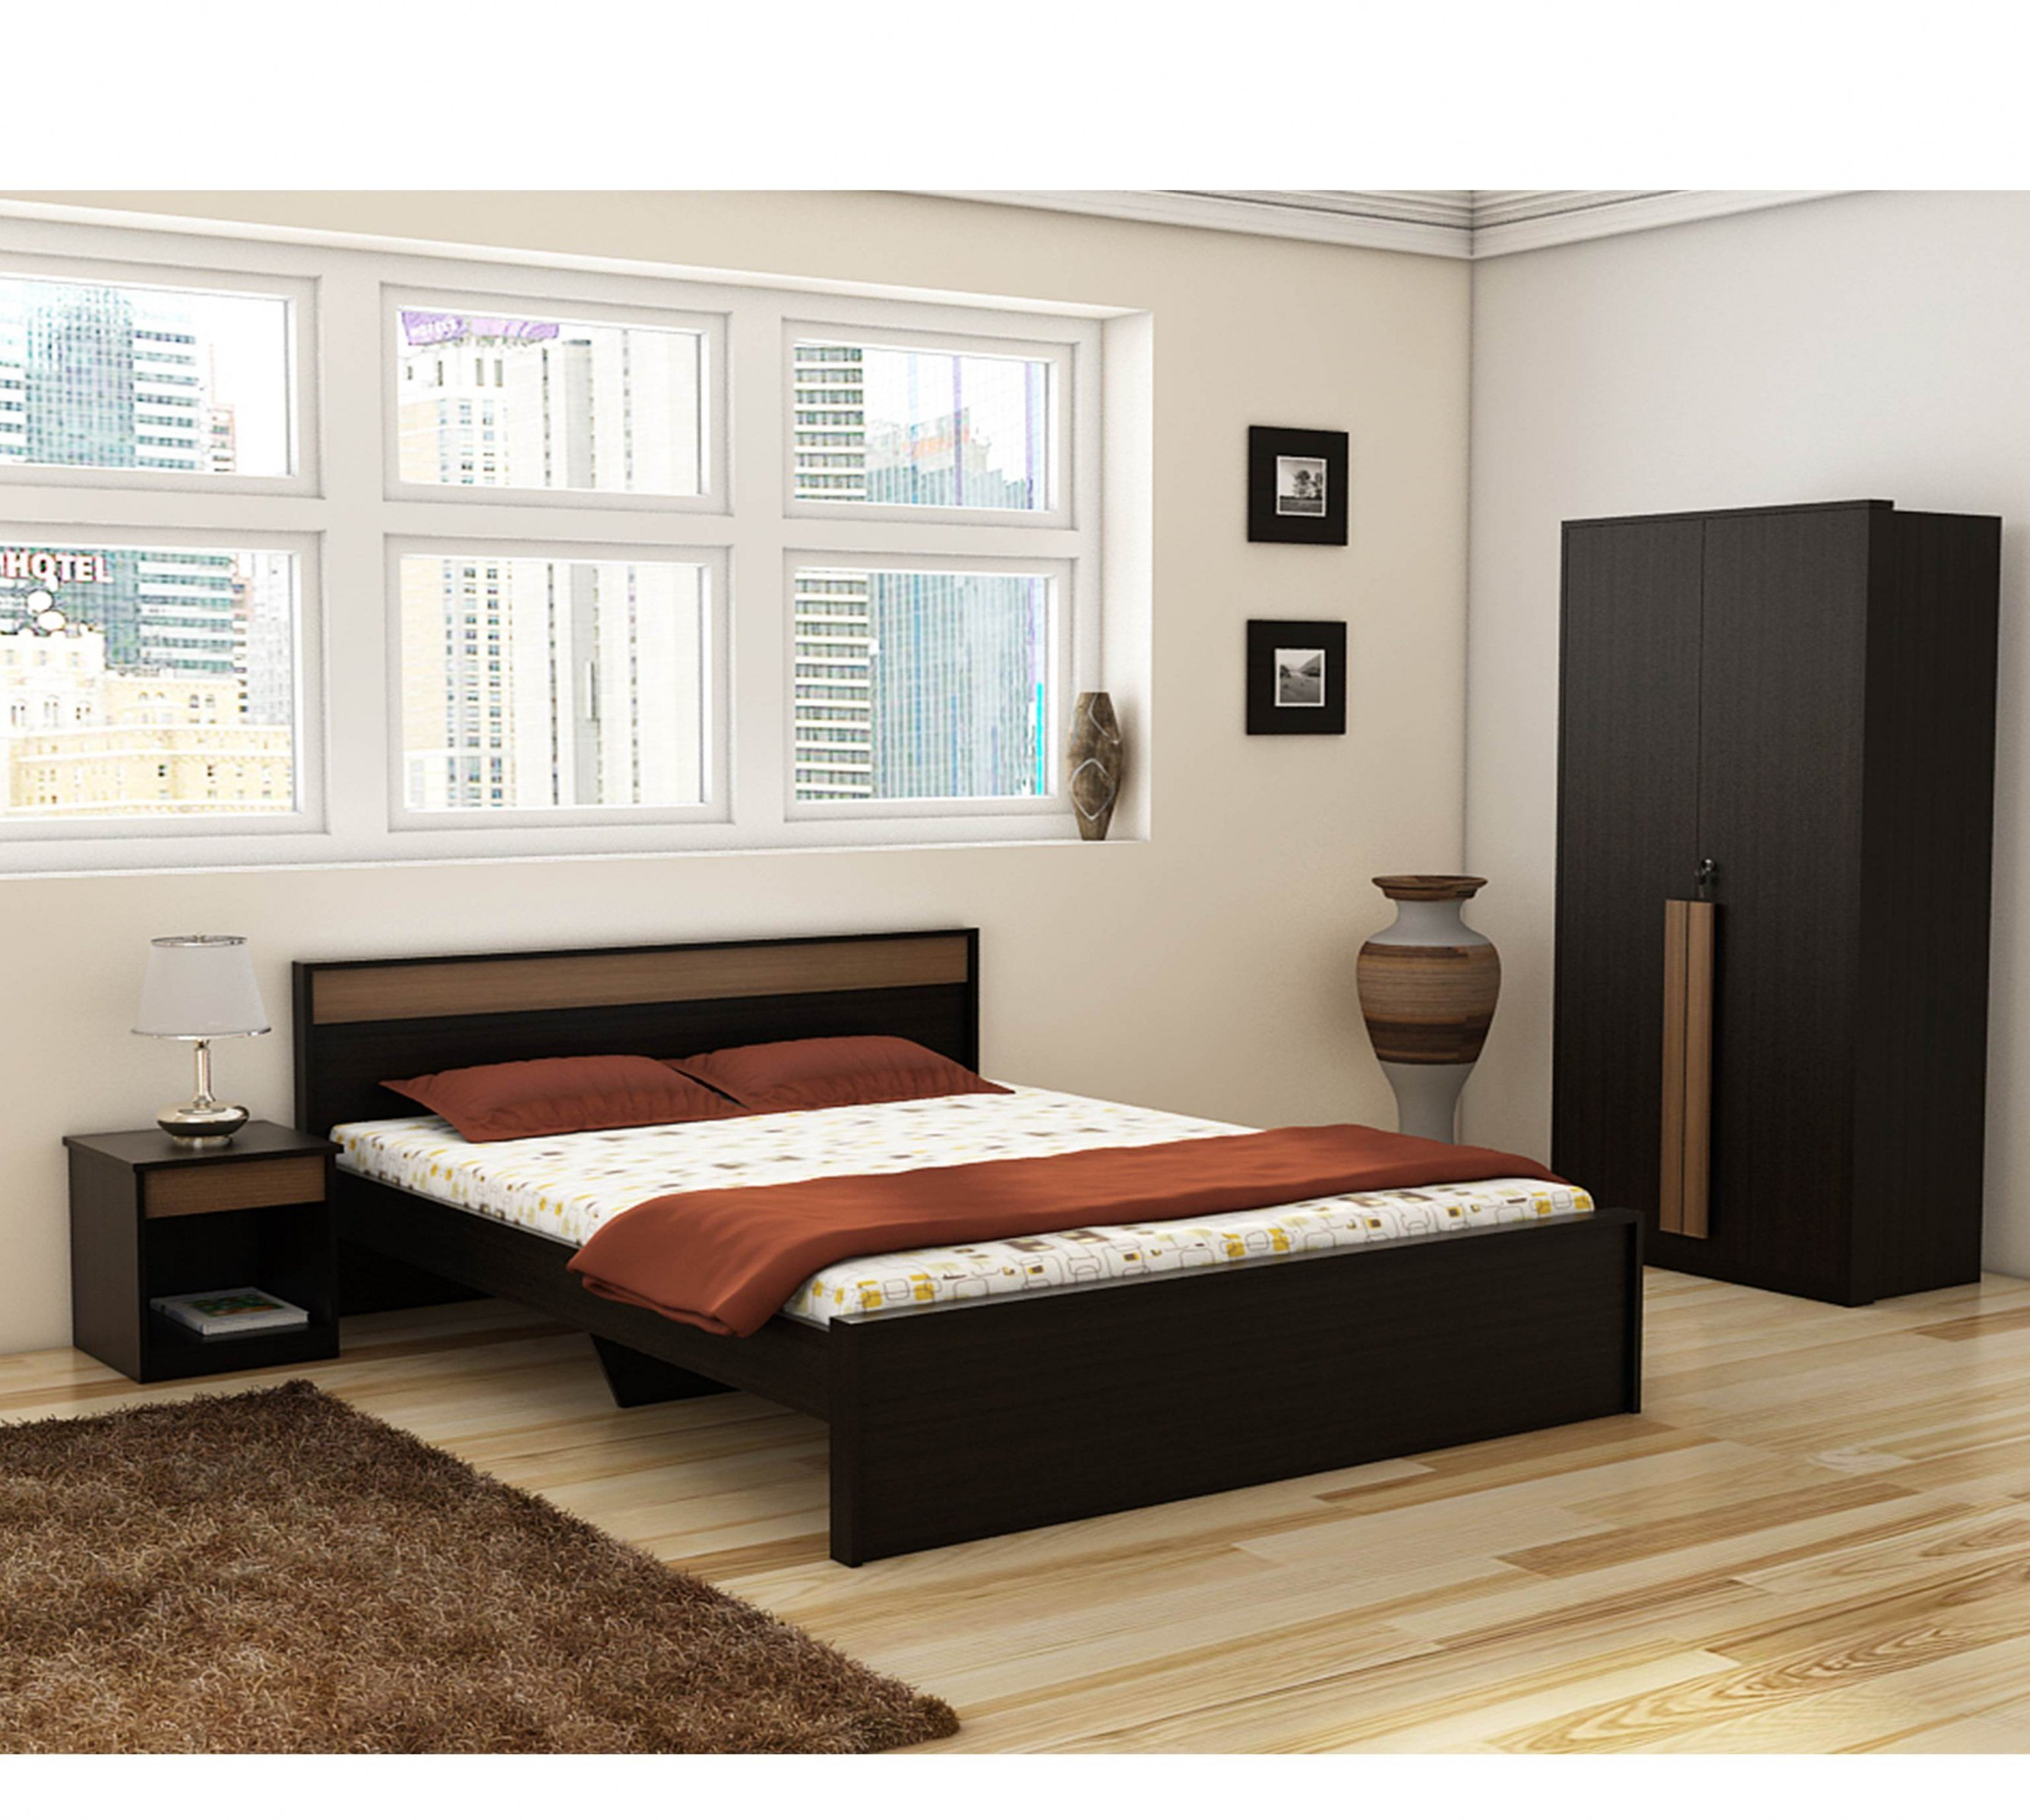 White Full Size Bedroom Set Luxury Low Beds Ikea White Bedroom Furniture Sets Ikea White Hemnes